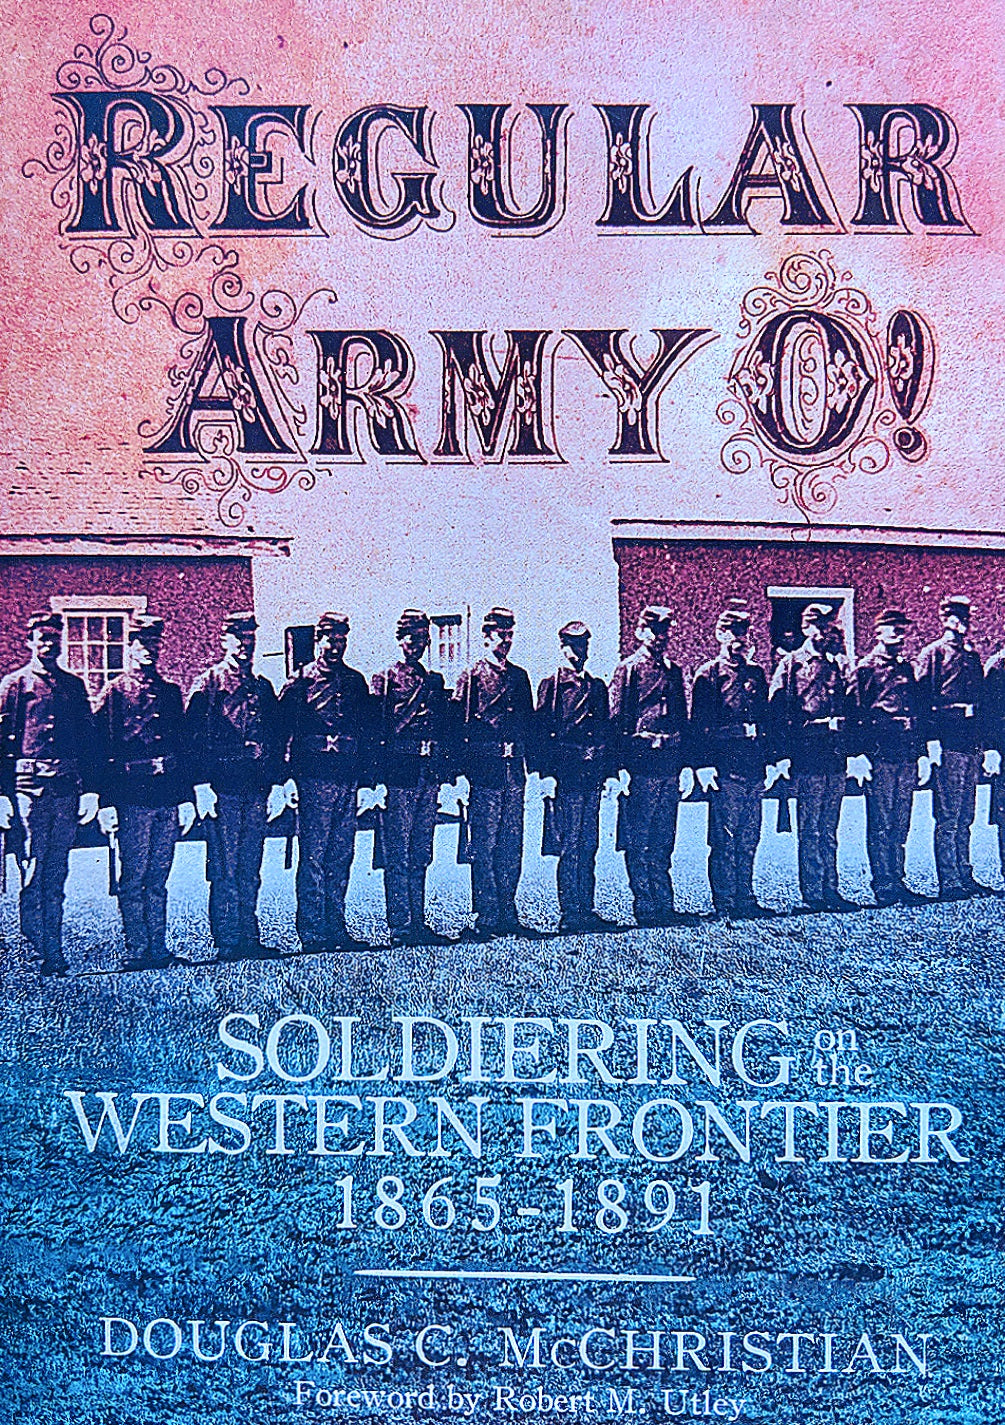 Regular Army O! Soldiering on the Western Frontier